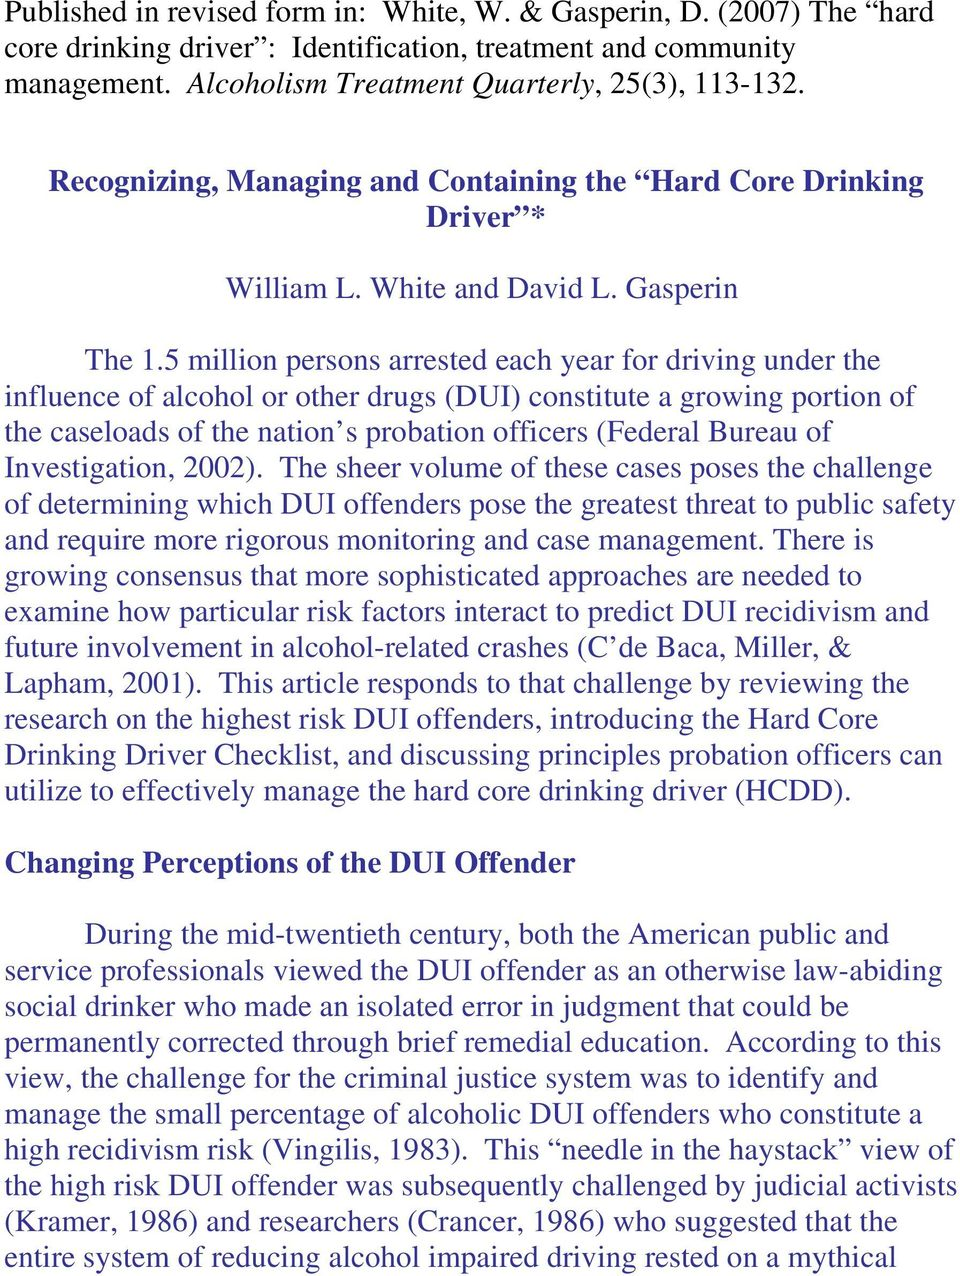 5 million persons arrested each year for driving under the influence of alcohol or other drugs (DUI) constitute a growing portion of the caseloads of the nation s probation officers (Federal Bureau